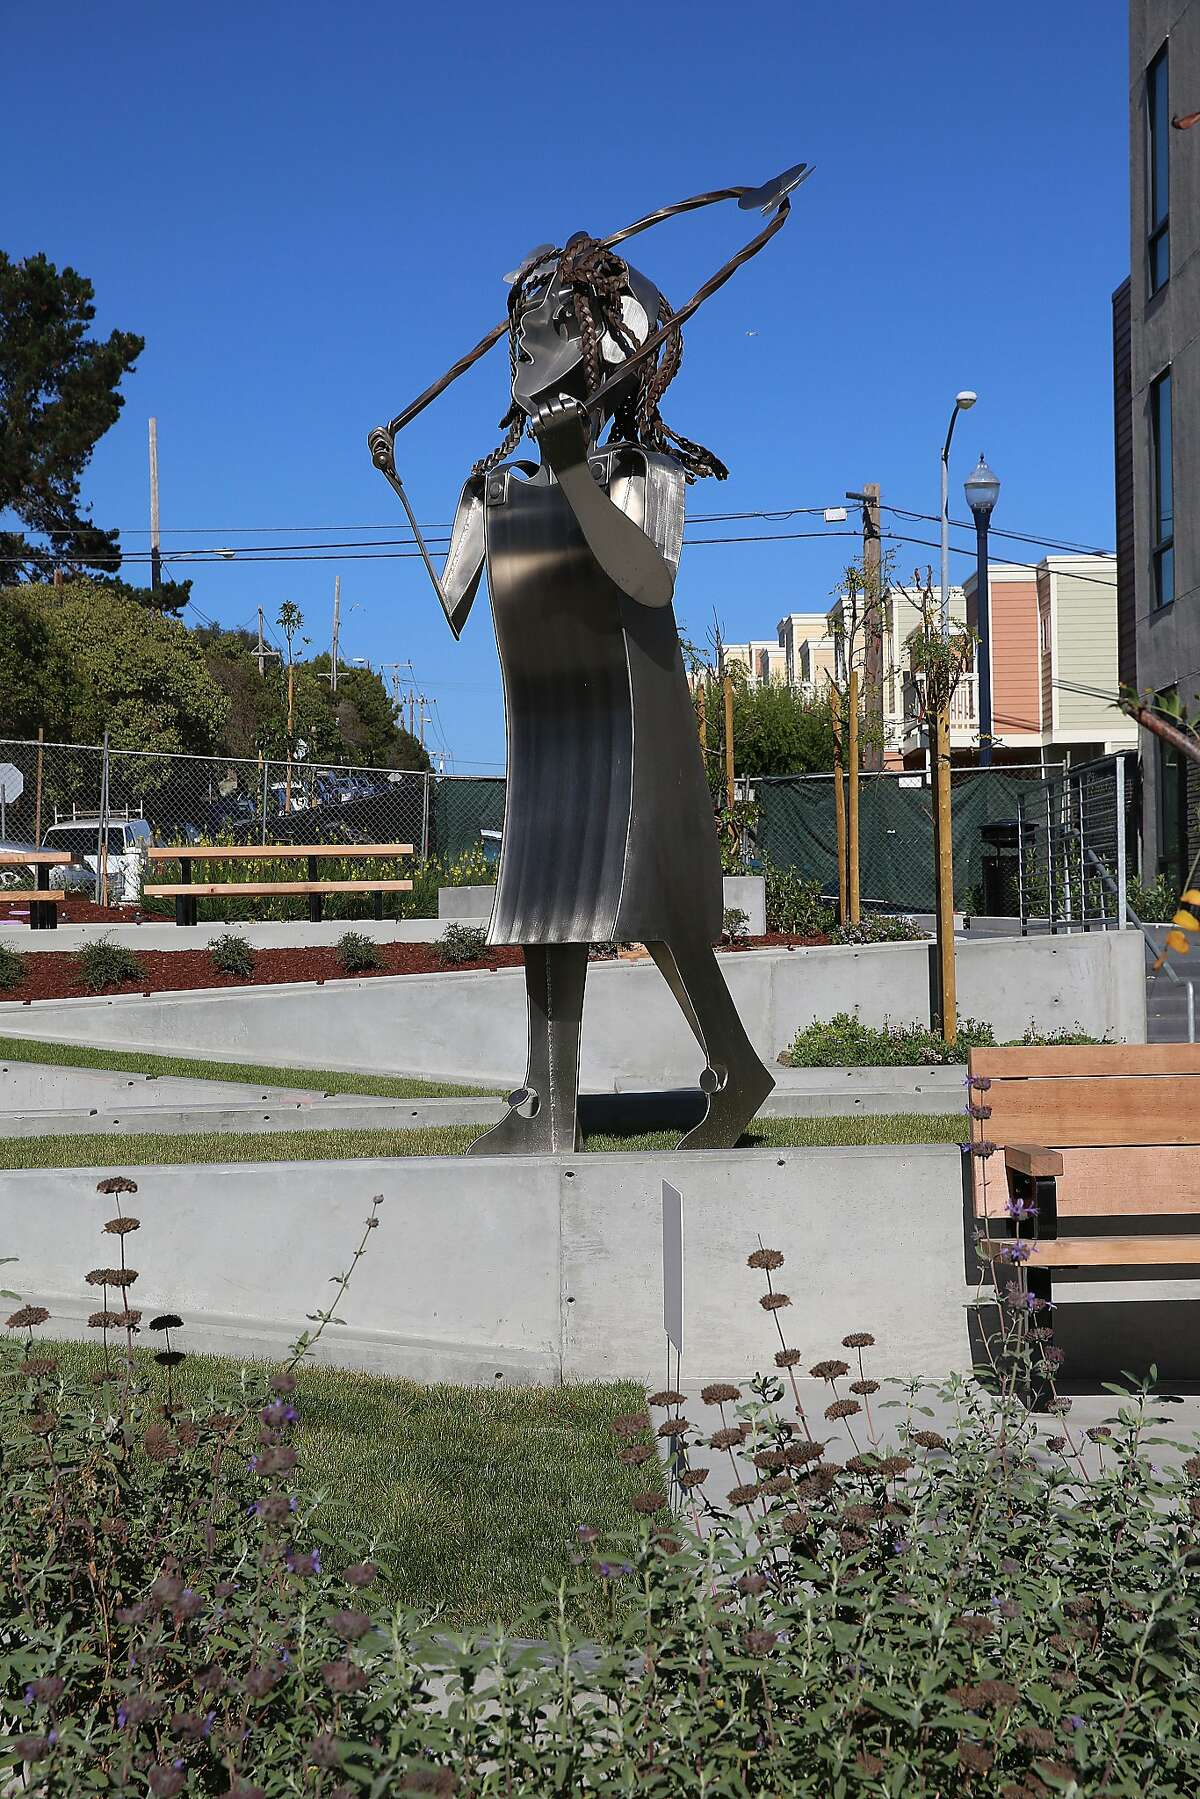 Butterfly Girl by Jason Webster is a twelve-foot figure of a girl jumping rope at Olympia Park in San Francisco, Calif., on Friday, October 2, 2015.